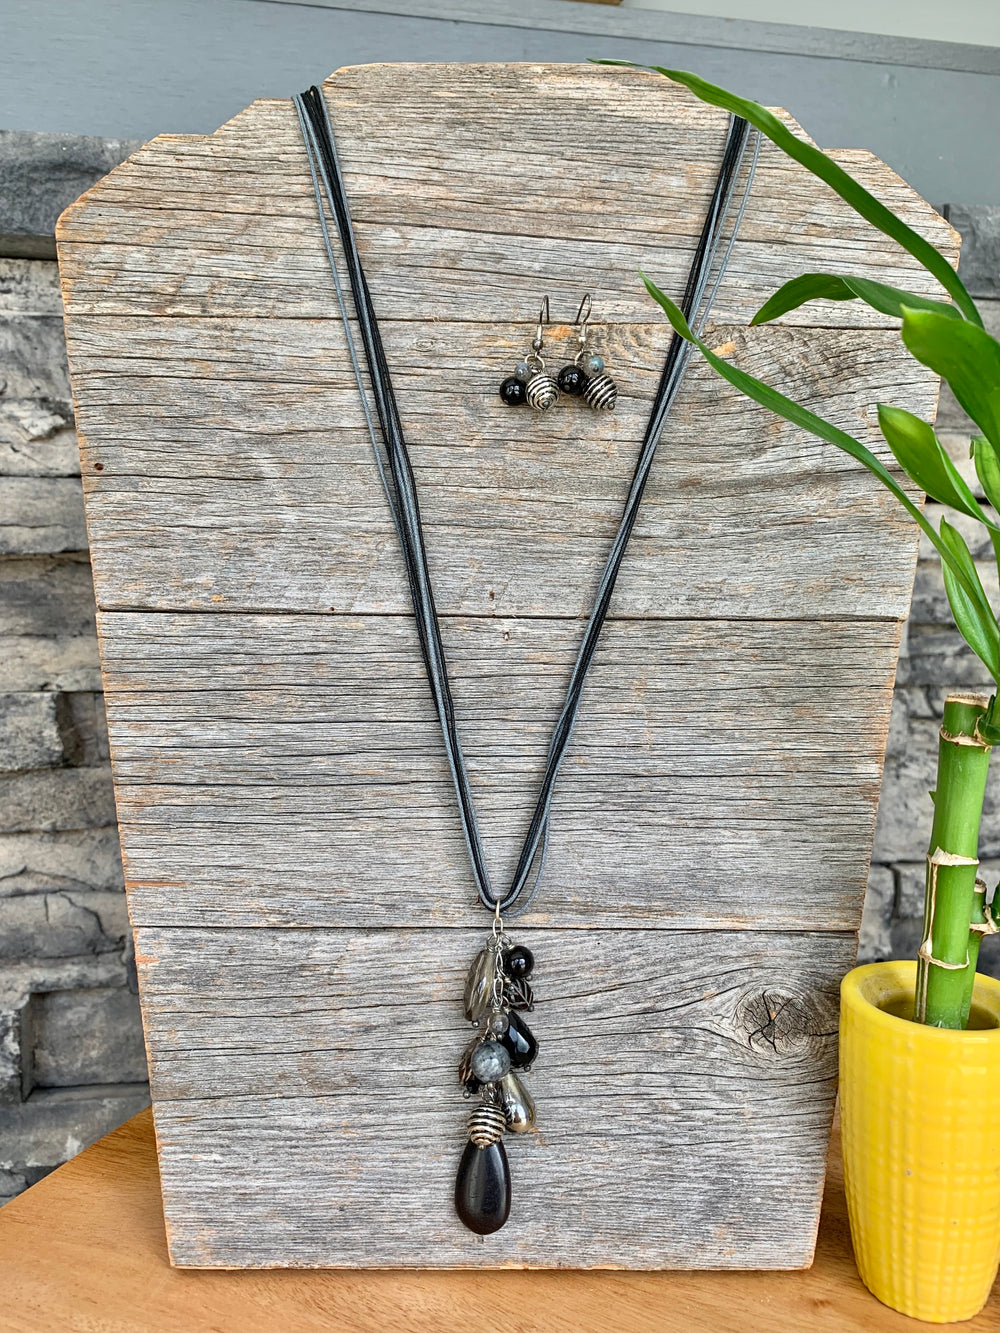 Black and Silver Pendant Necklace and Earring Set by Guardian Village from Nepal